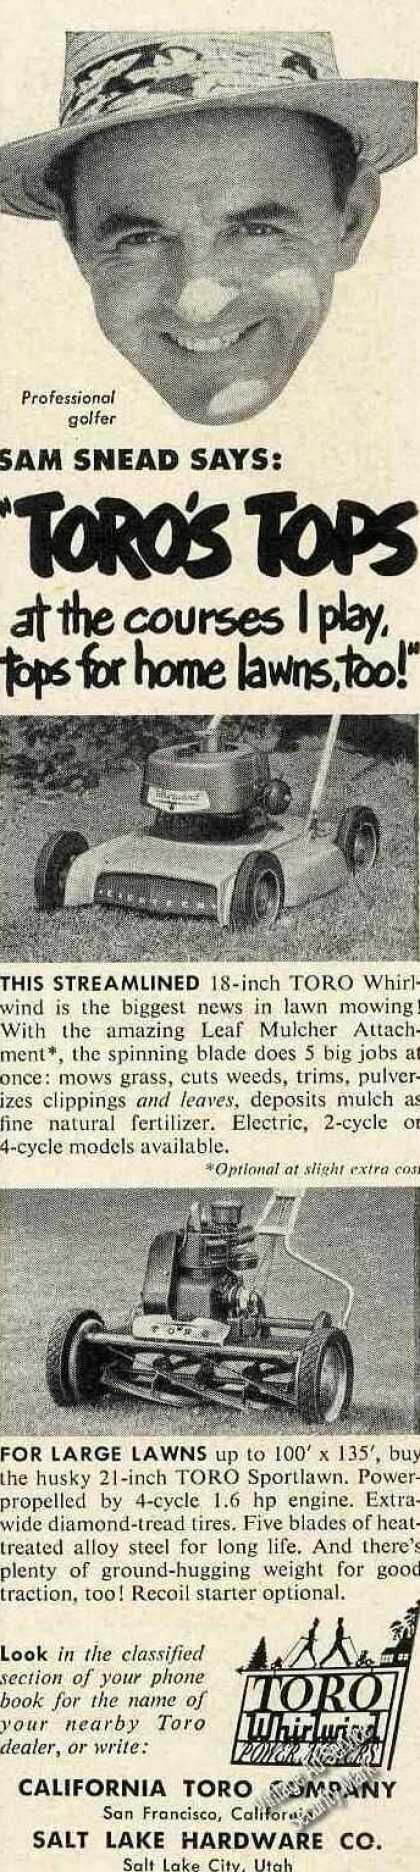 Sam Snead Photo Toro Whirlwind Power Mowers (1953)